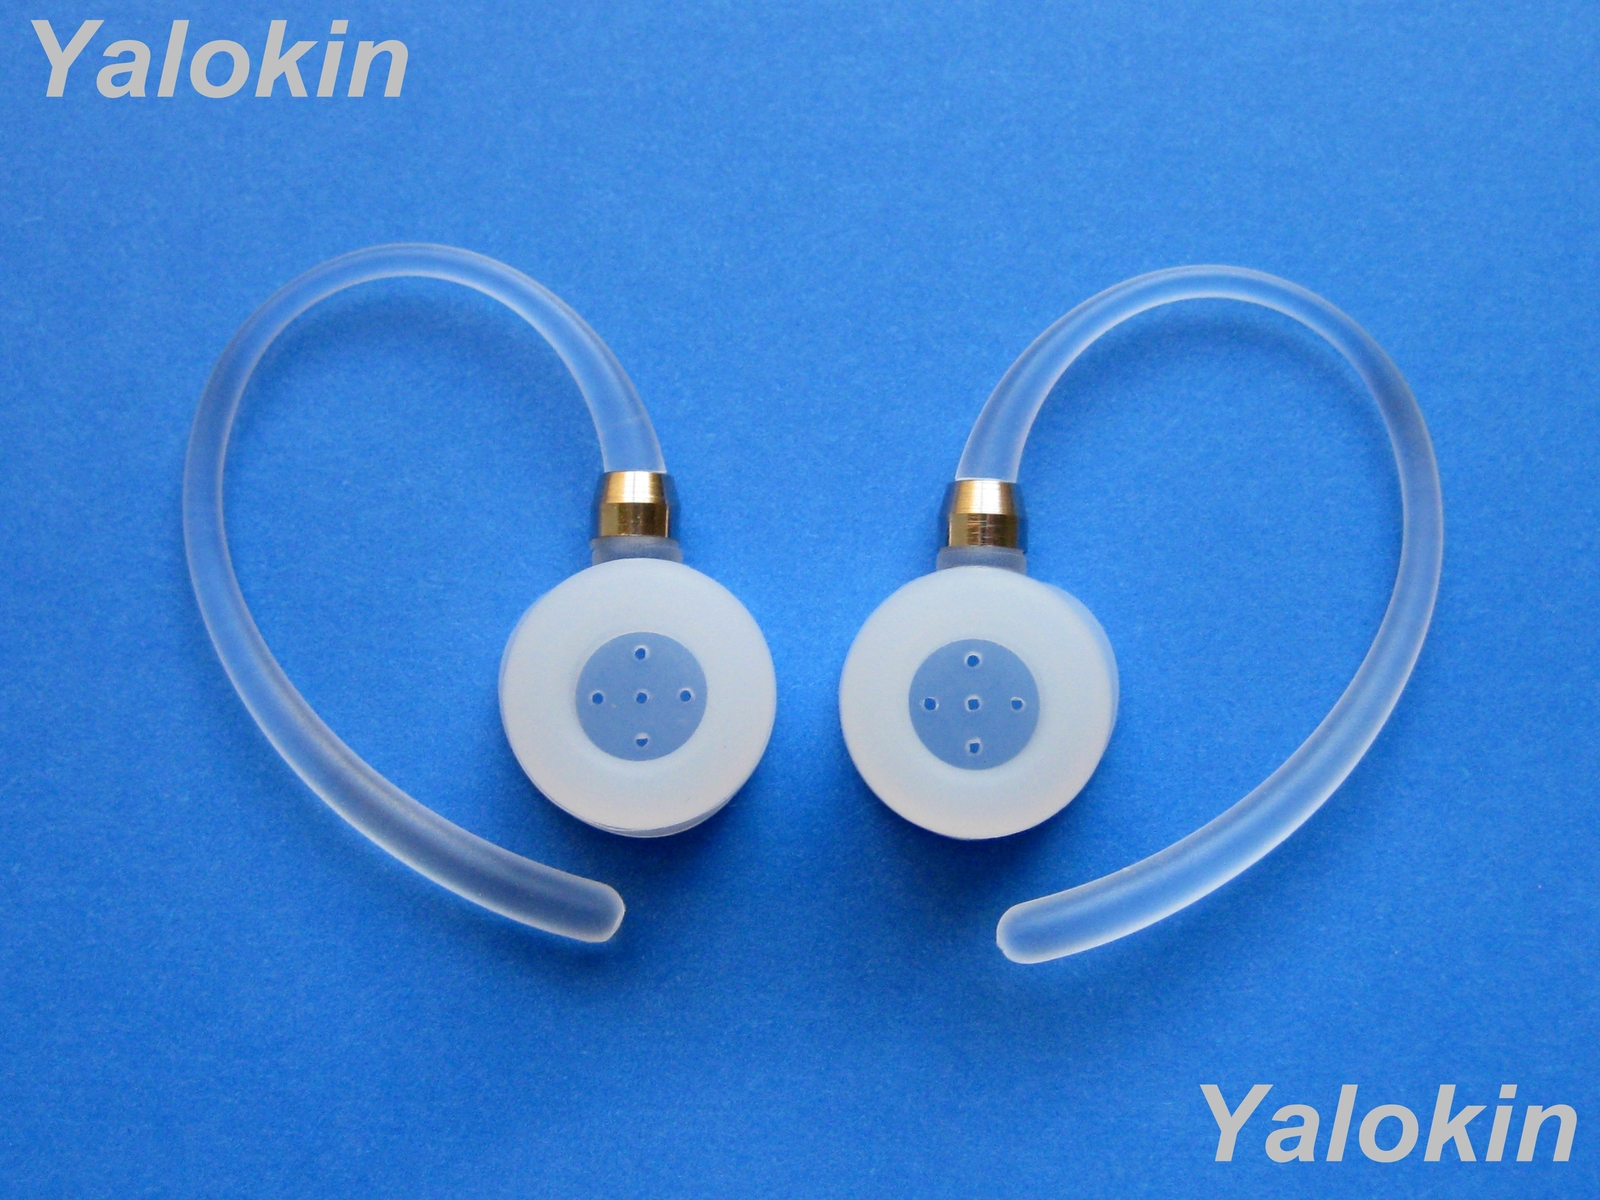 2 Earhooks and 2 Earbuds for Motorola Boom 89605N Bluetooth Headset Devices